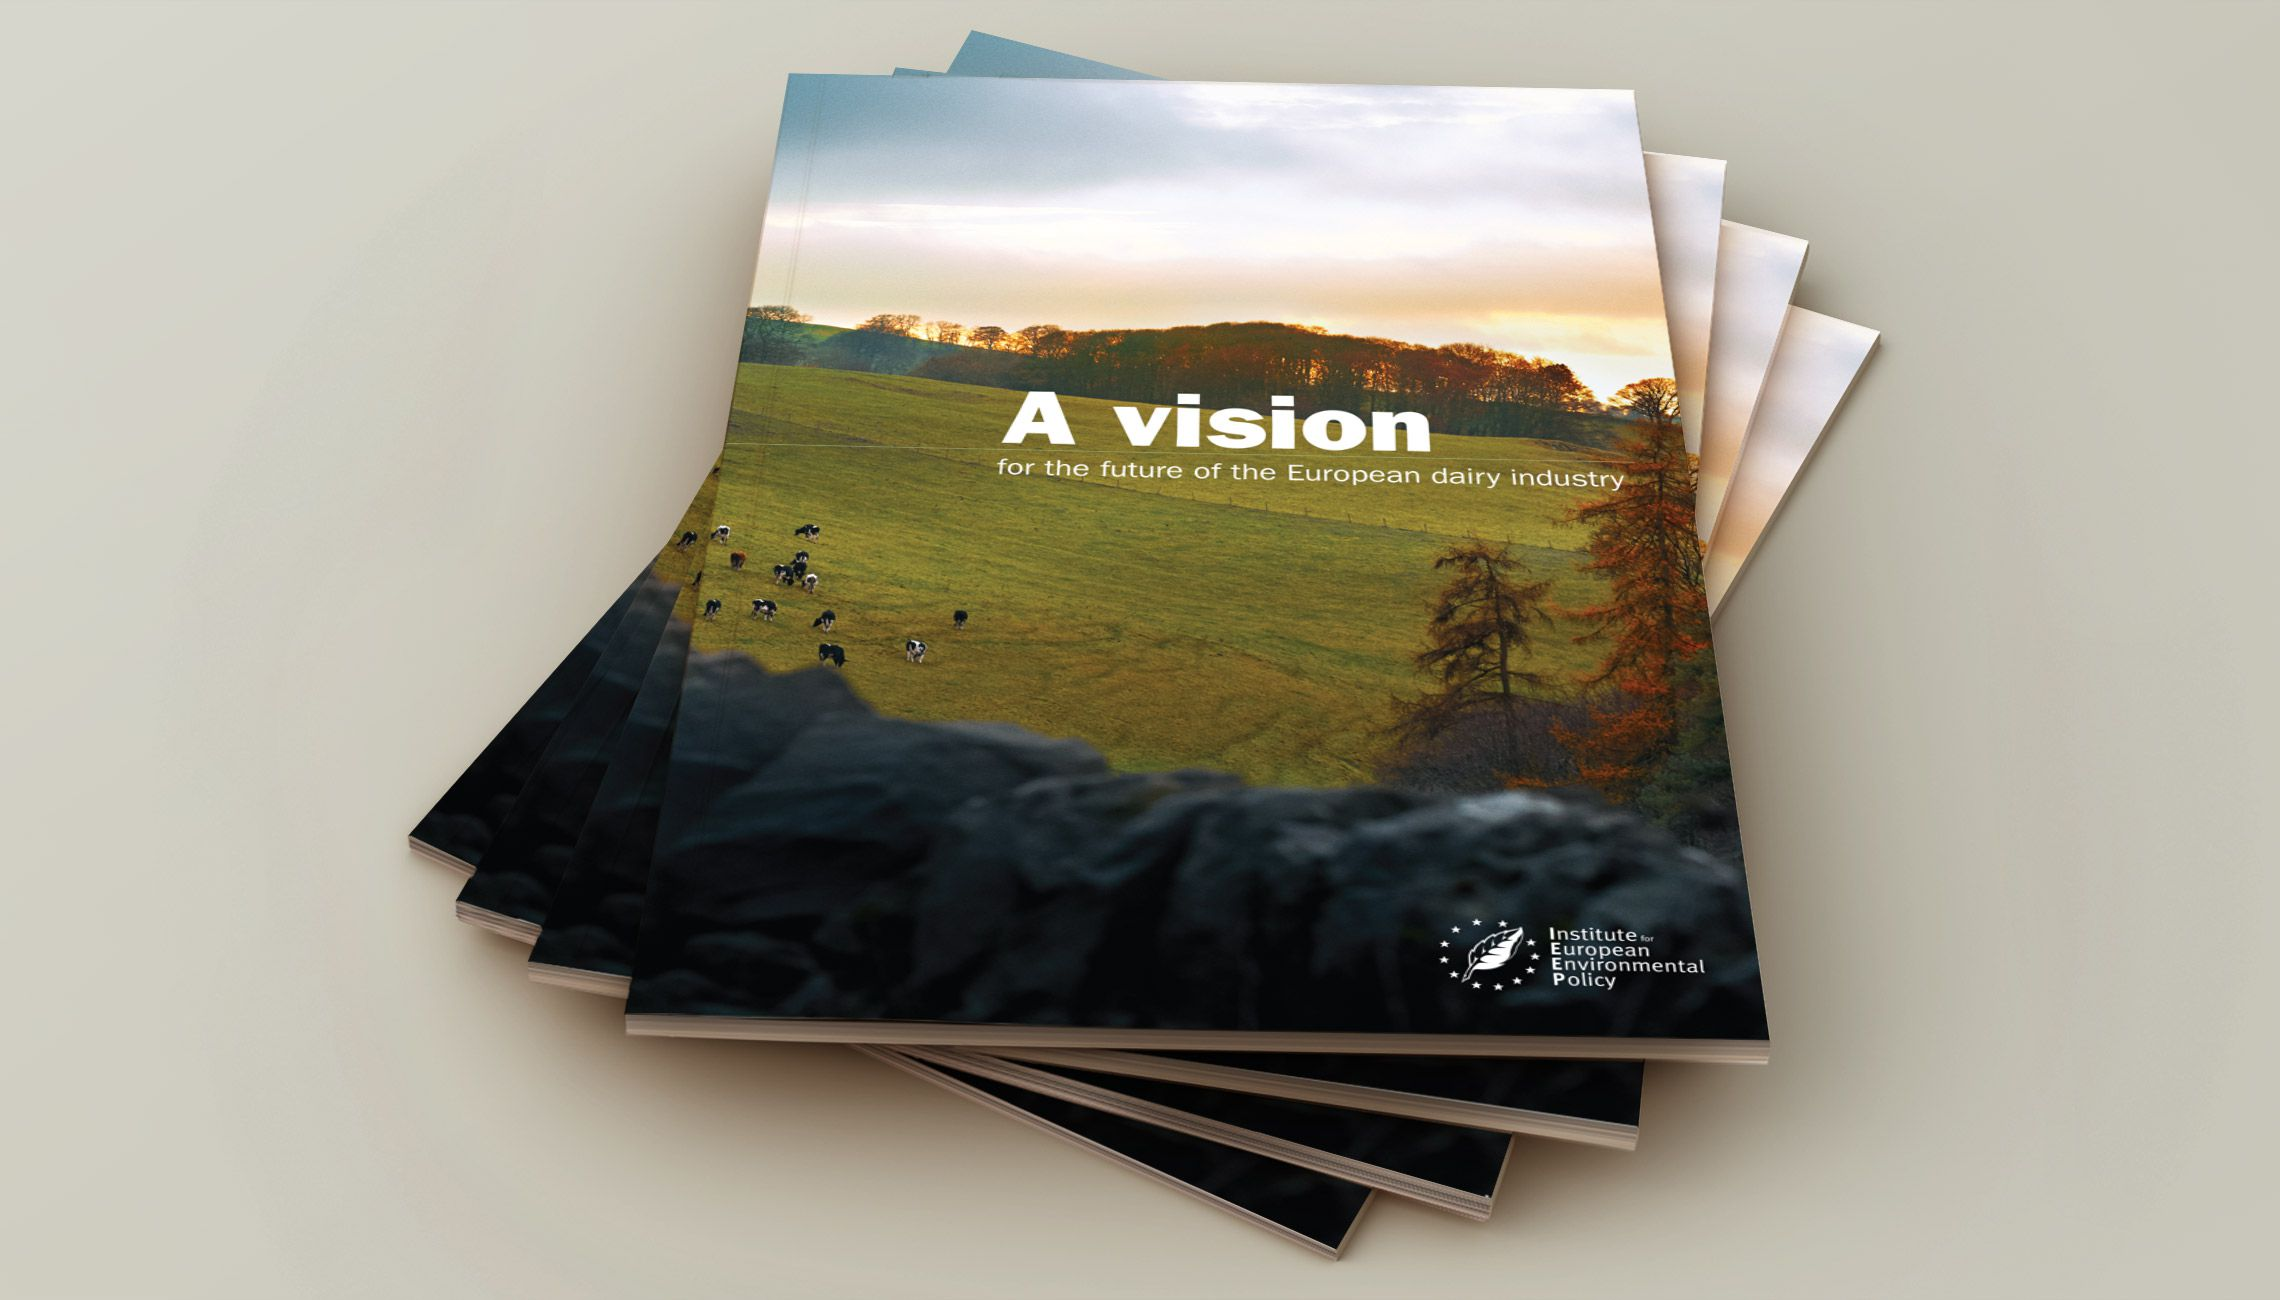 publication: Brochure Vision Diary Industry - image 1